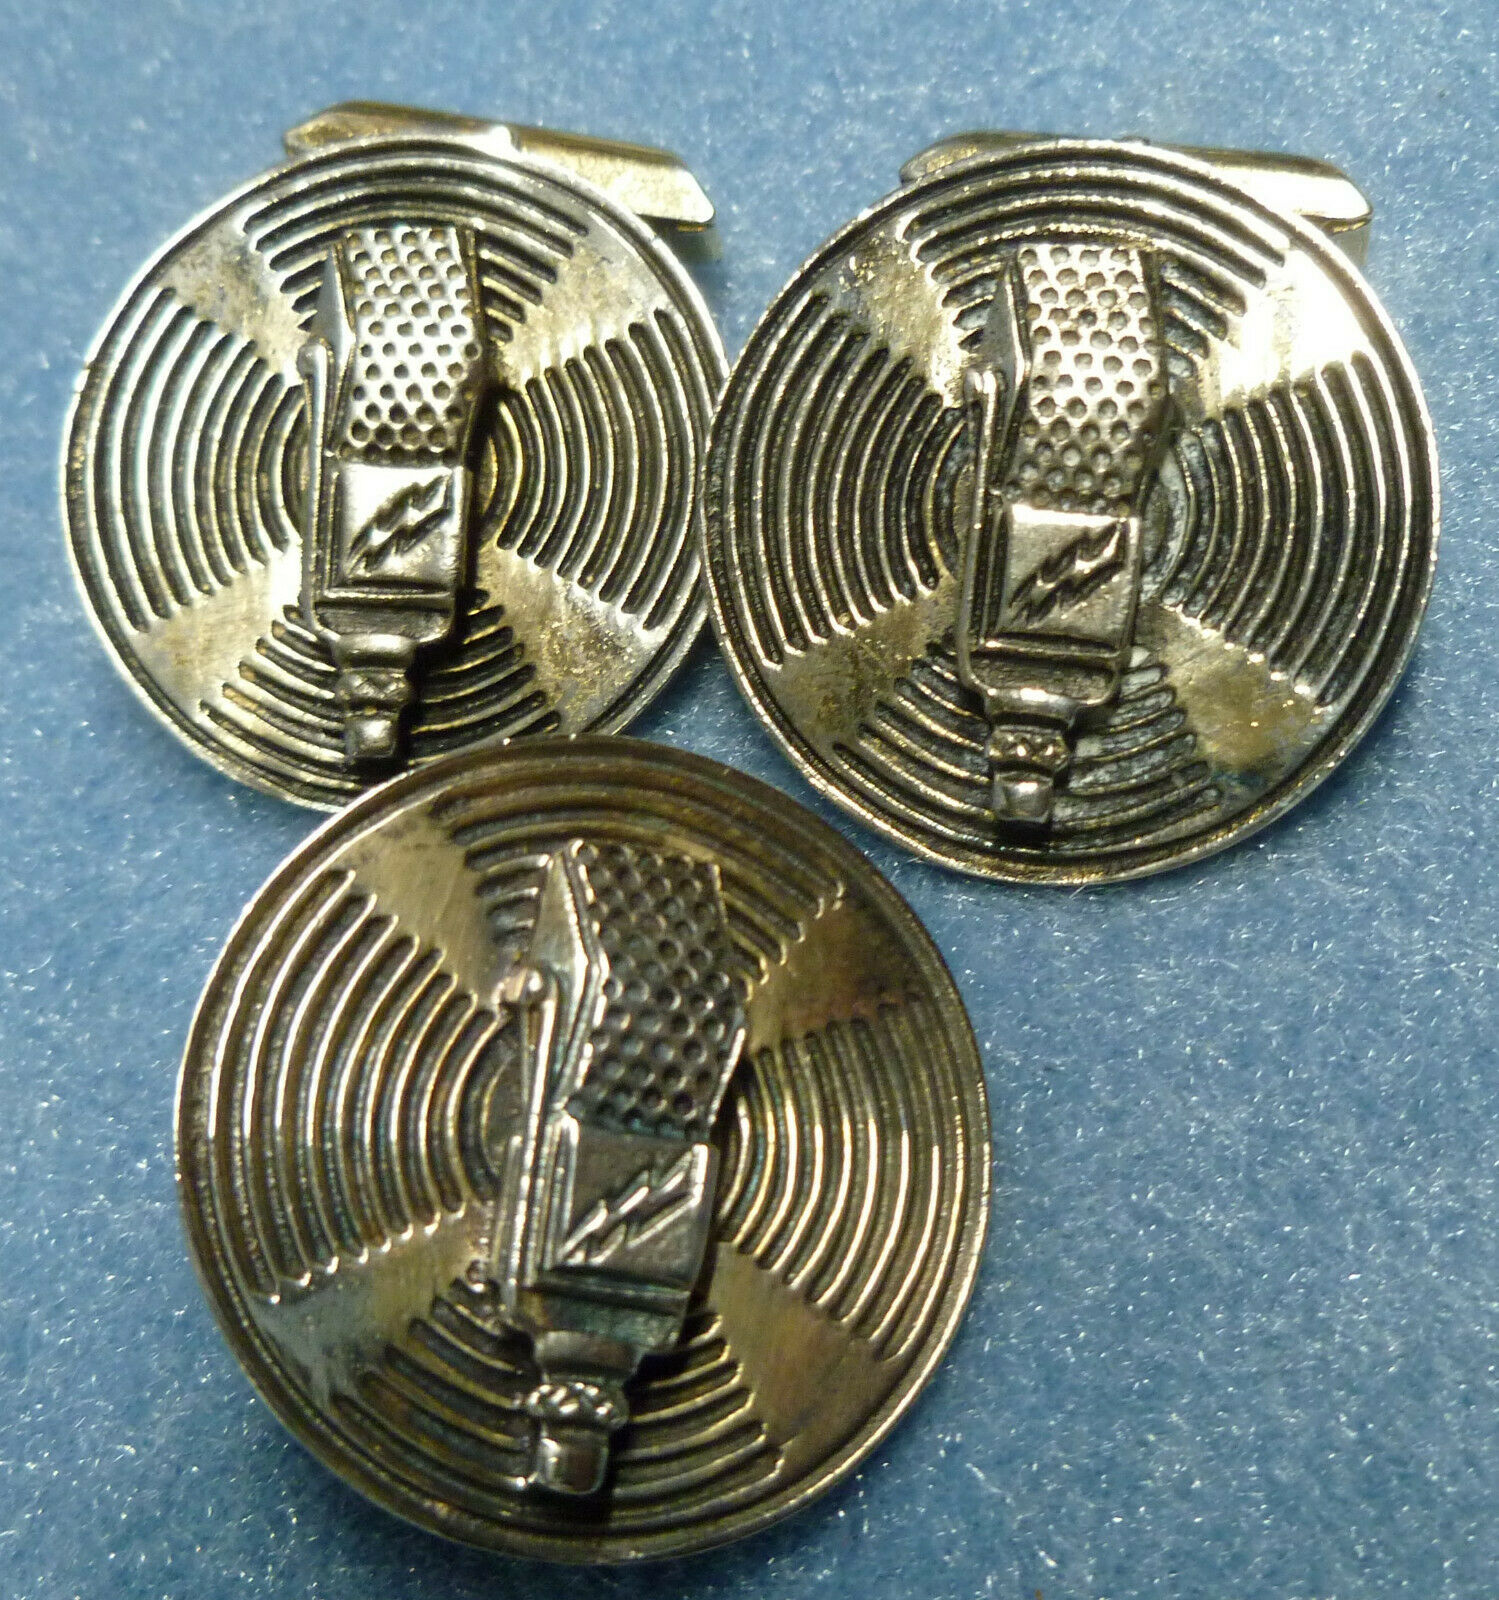 Vintage Radio/TV Microphone Broadcaster Cuff Link Tie Clip Set Sterling Silver. Buy it now for 150.00